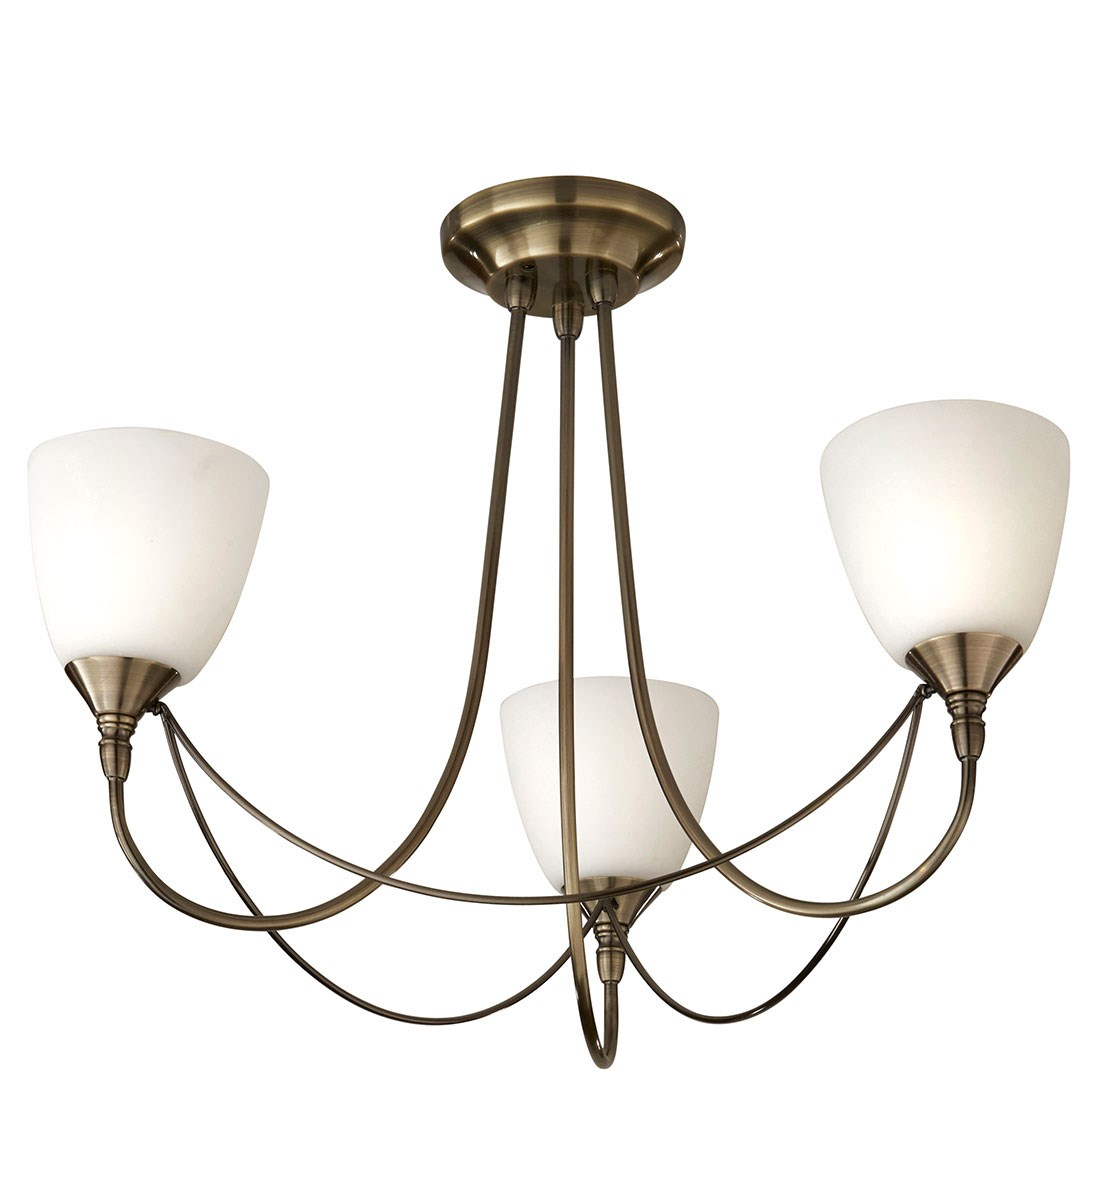 Nottingham 3 Light Ceiling Fitting Antique Brass Multi Light